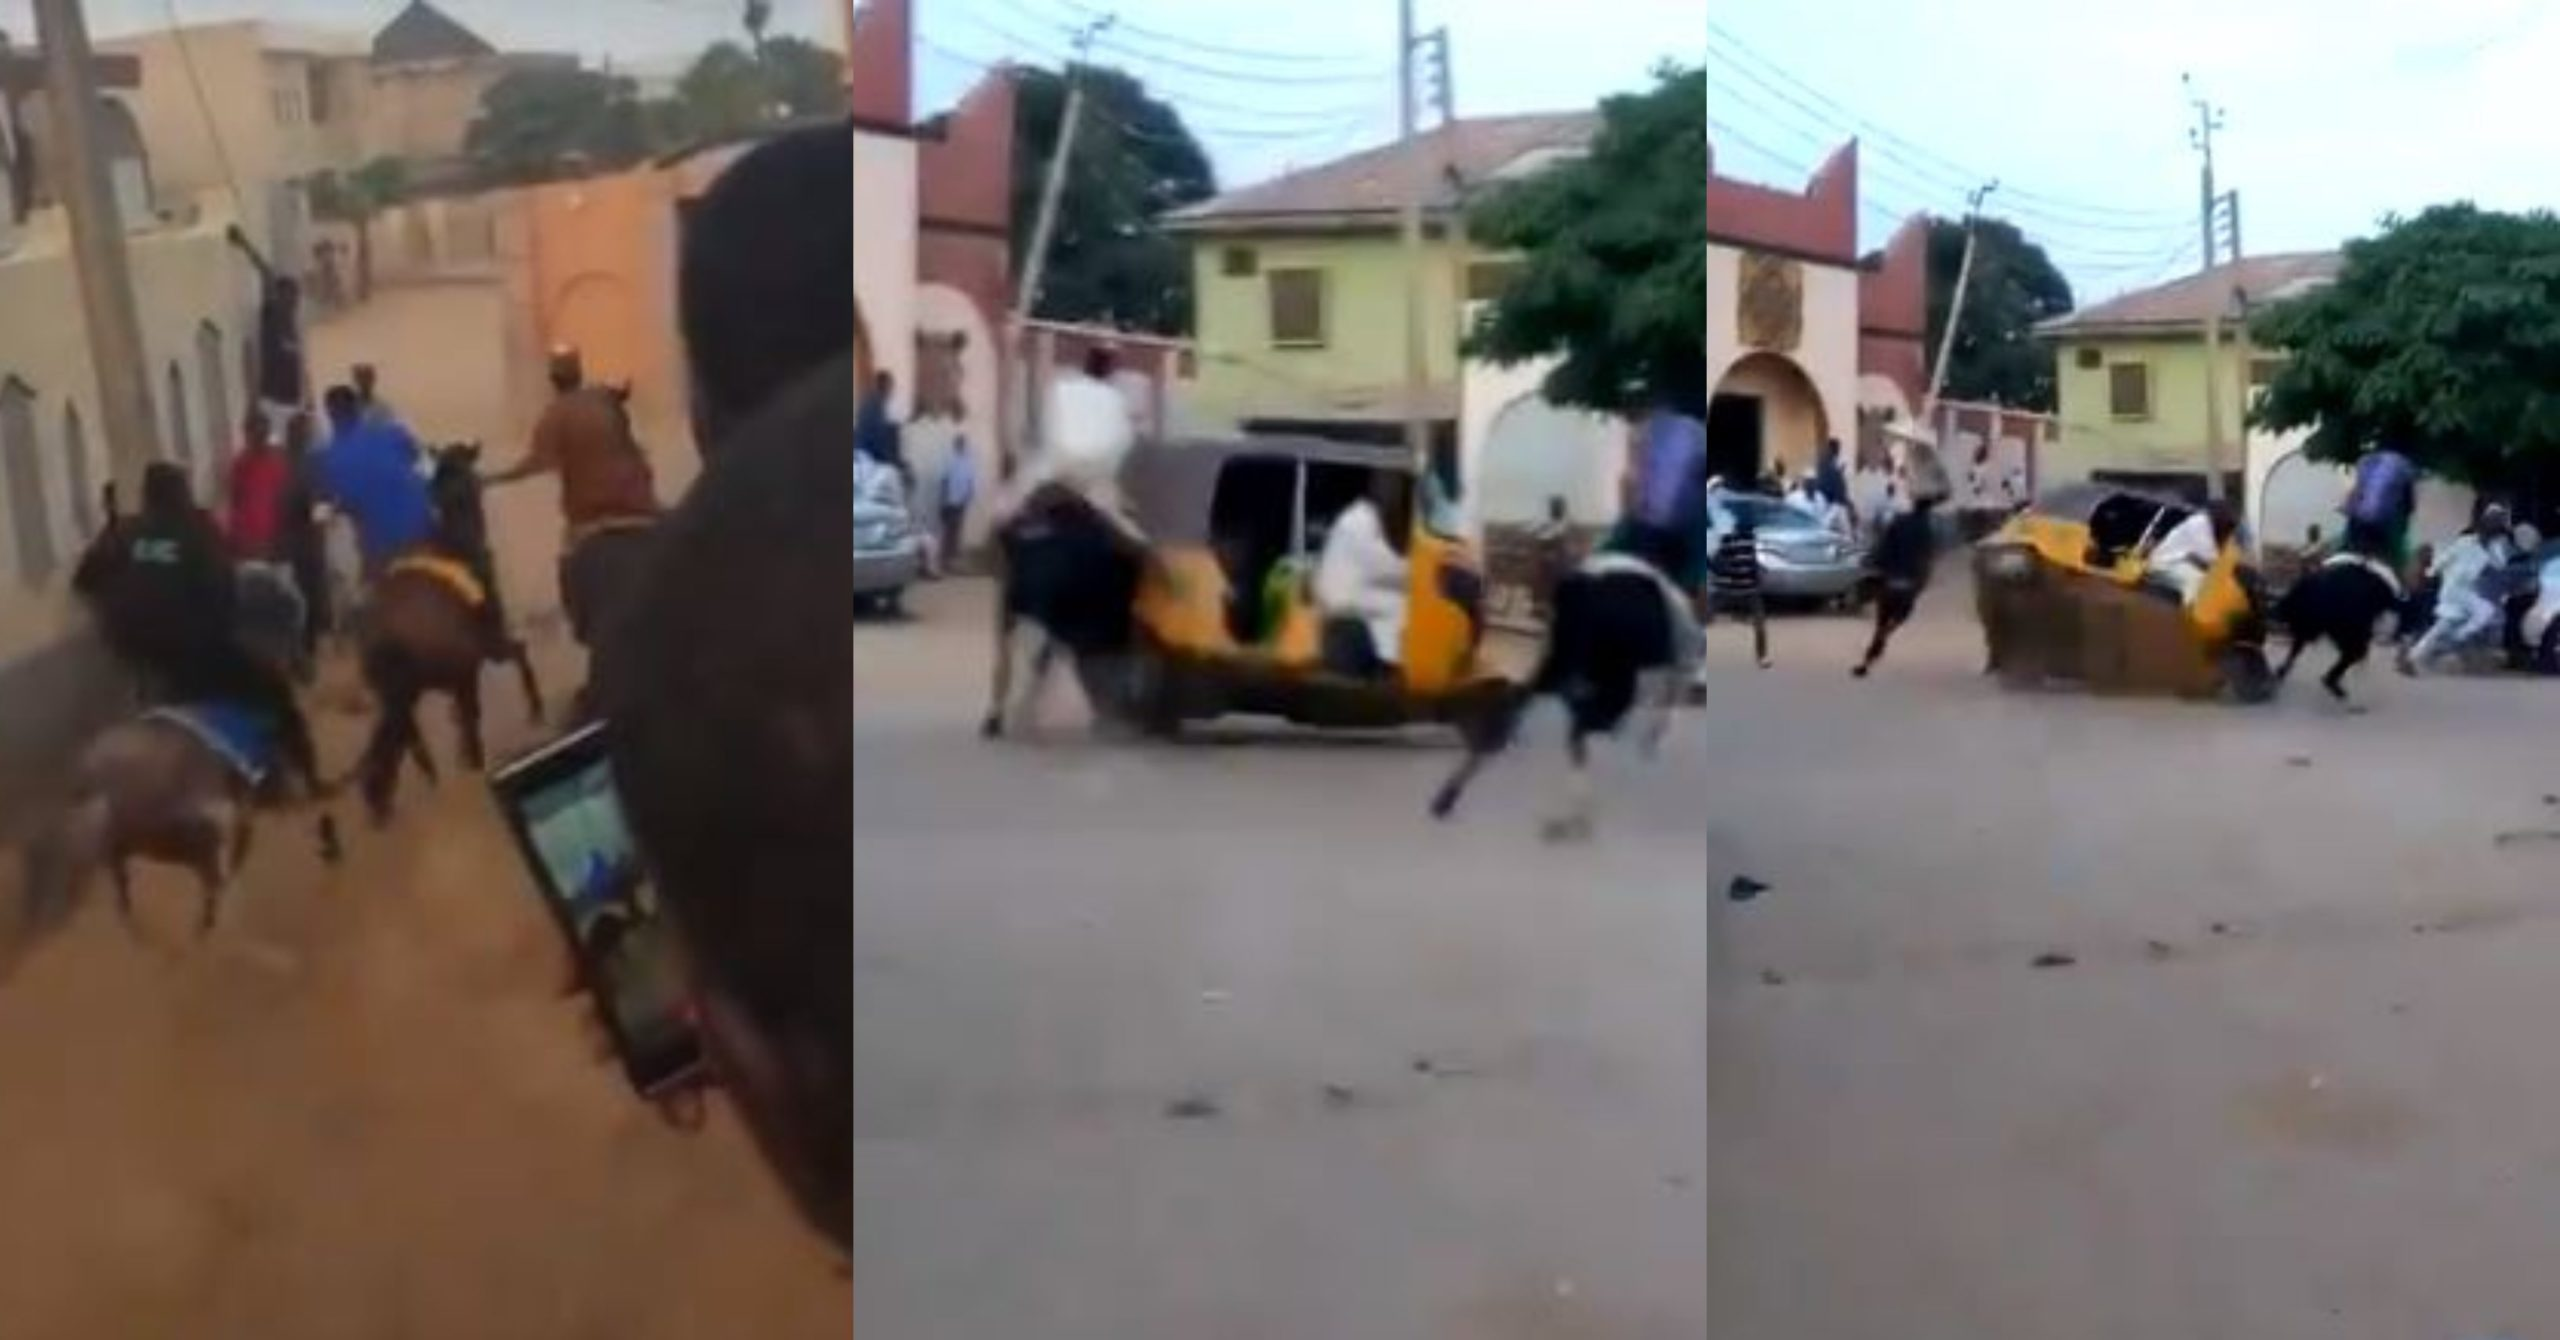 See viral videos of a horse race in the streets of Kano that has got social media users talking